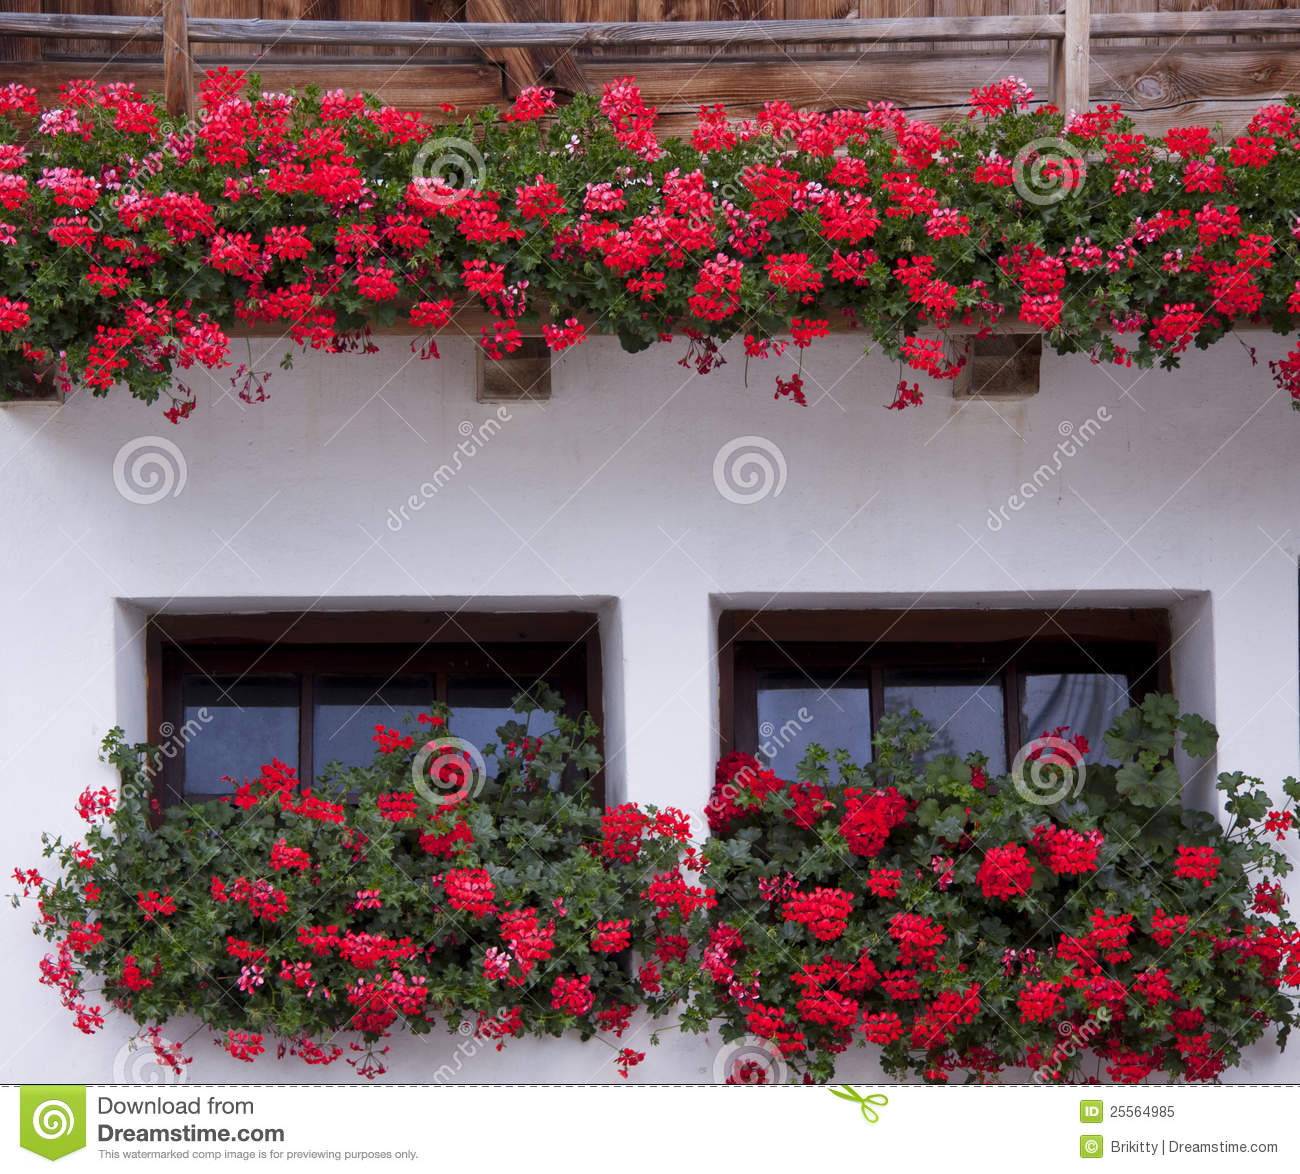 Windows The House With Flowers Royalty Free Stock Image